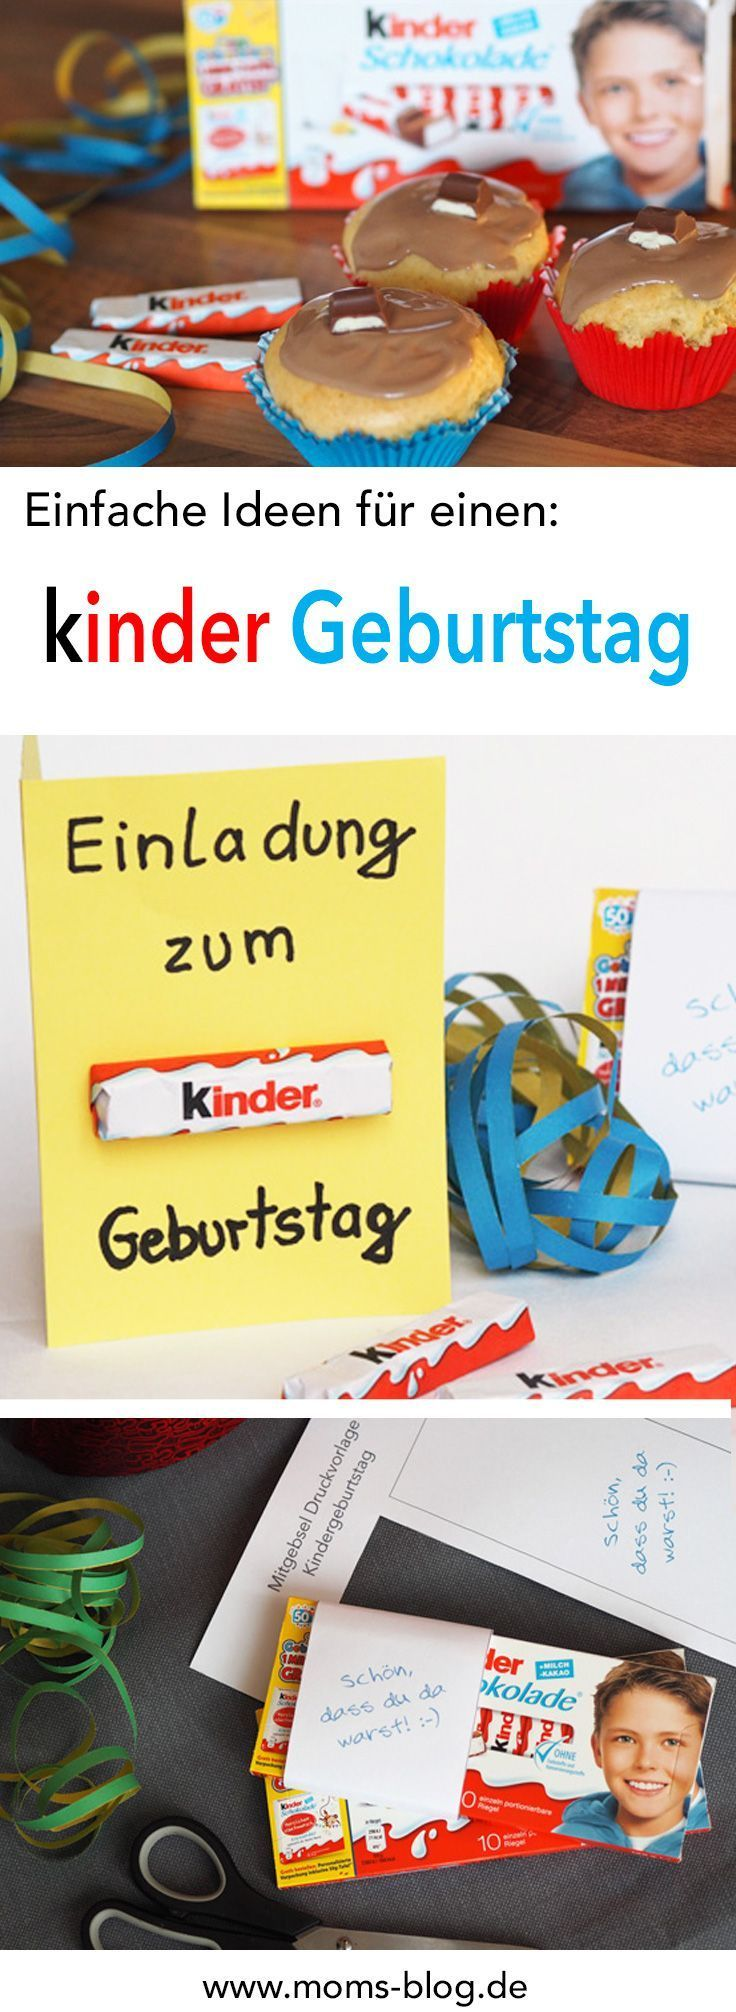 Photo of Ideas for a child's birthday * in cooperation with Ferrero kinder Schokoladen! ⋆ Moms Blog, the practical family blog!